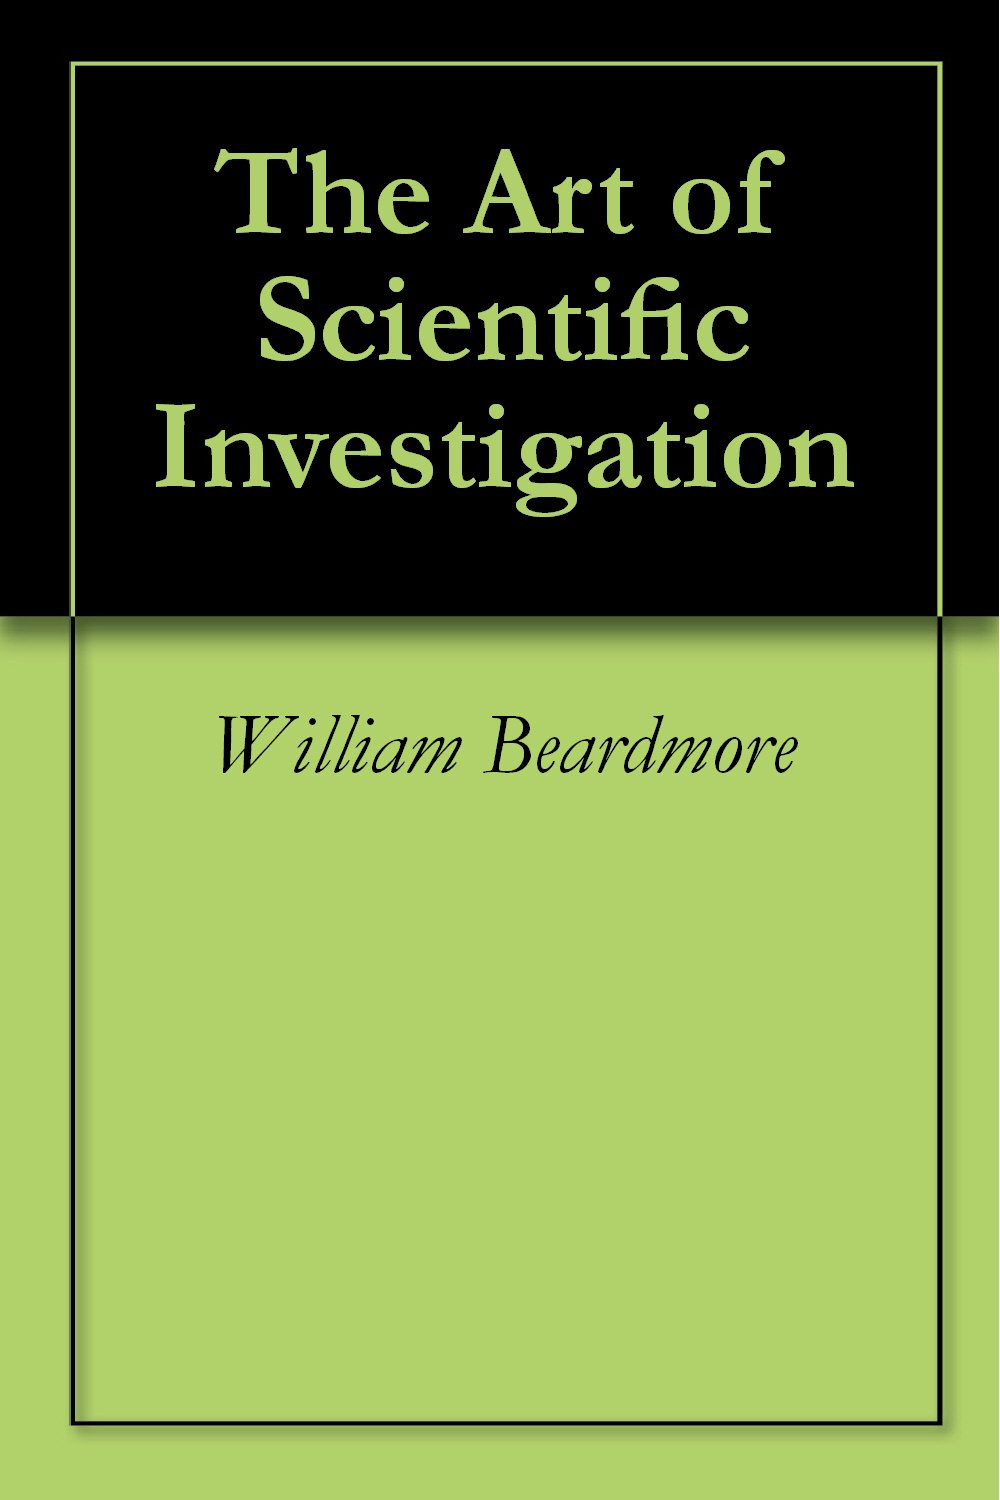 The Art of Scientific Investigation